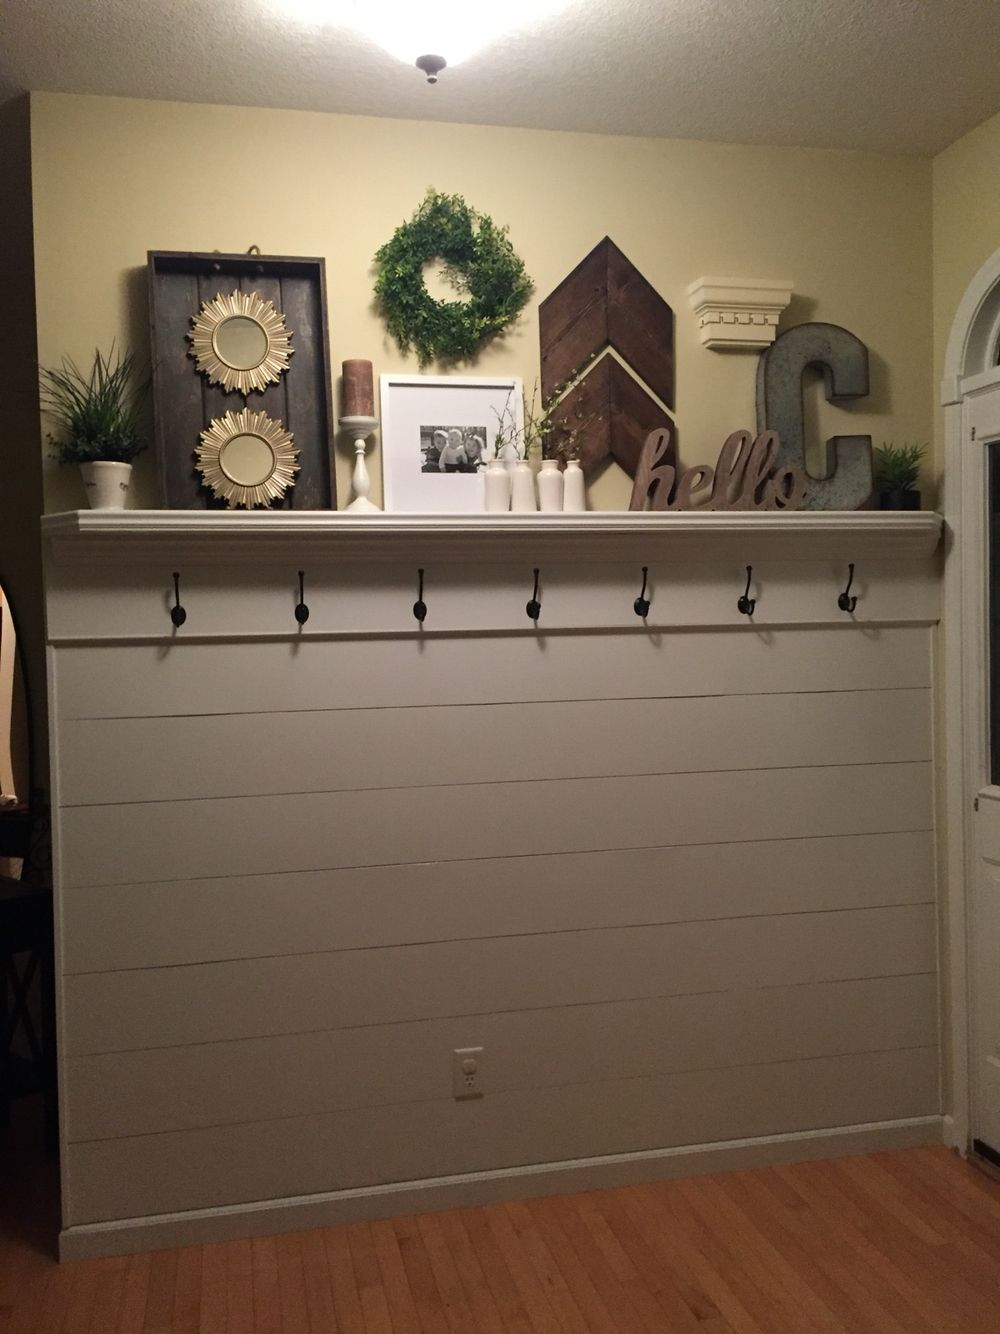 Shelves White Walls And Entry Ways: Shiplap Entryway With Shelf And Hooks